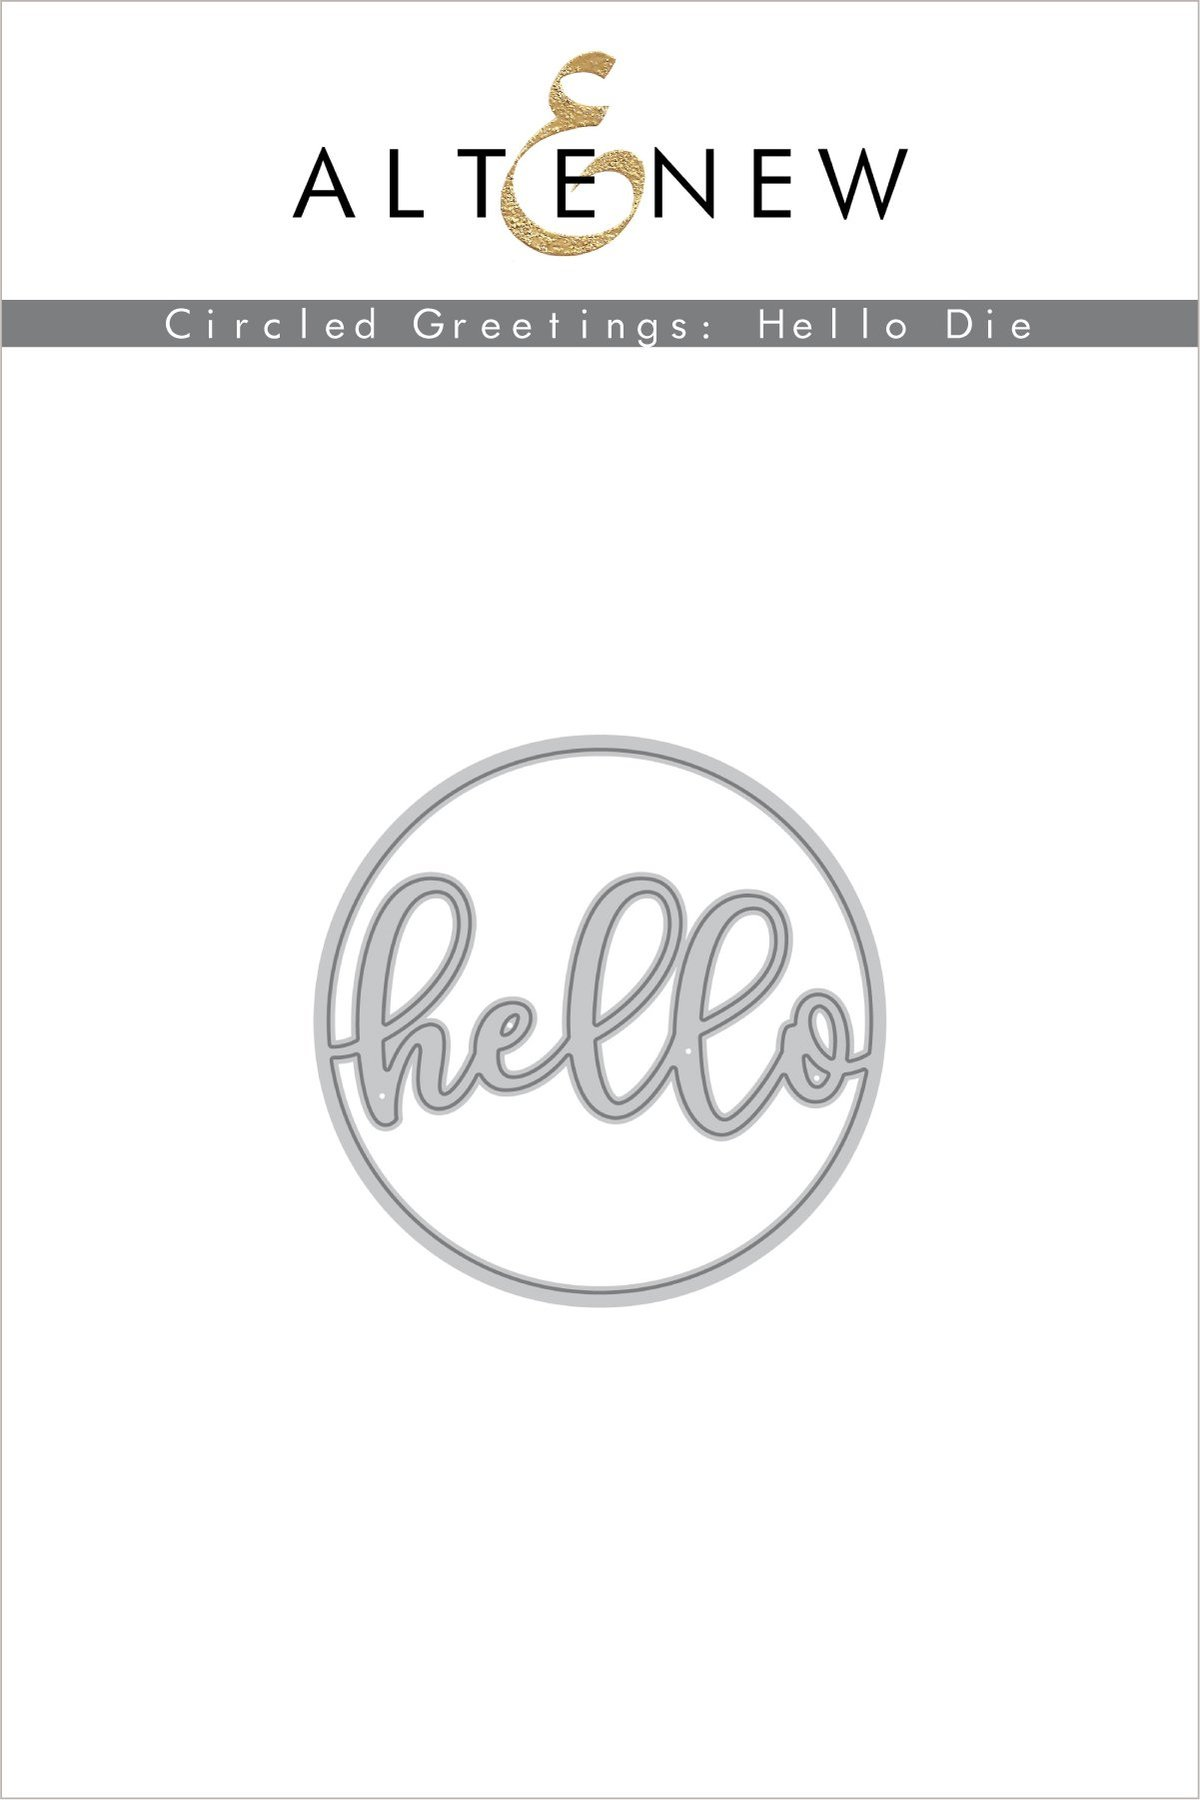 *NEW* - Altenew - Circled Greetings: Hello Die